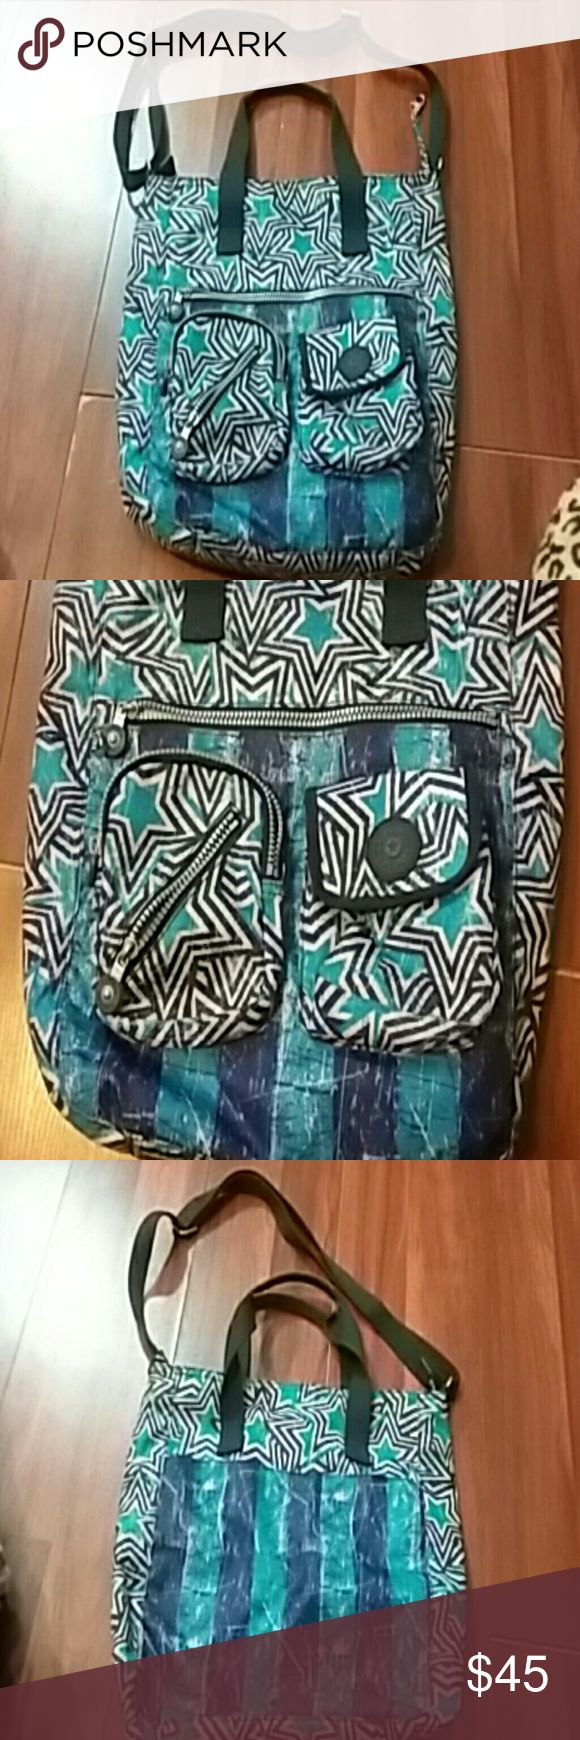 Kipling bag. Very good condition! !!! Nice with lots of space long zipper  in front that opens  two pockets on front  two handle and long strap also cross body bag zipper in side one pocket I n side big pocket on back of bag. Kipling Bags Crossbody Bags